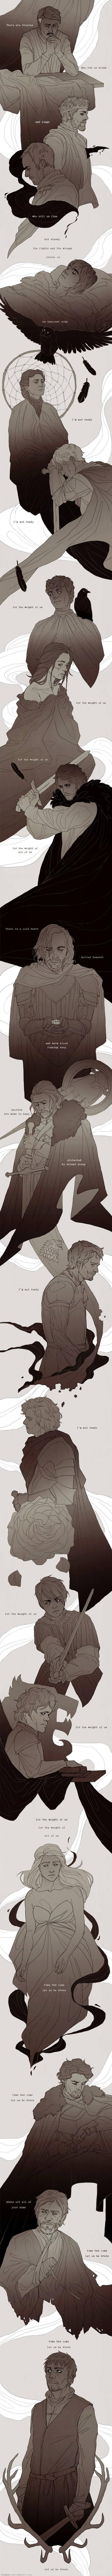 A Song of Ice and Fire. - Imgur with lyrics from the song the Weight of Us by Sanders Bohlke there is a YouTube video of GoT using this song